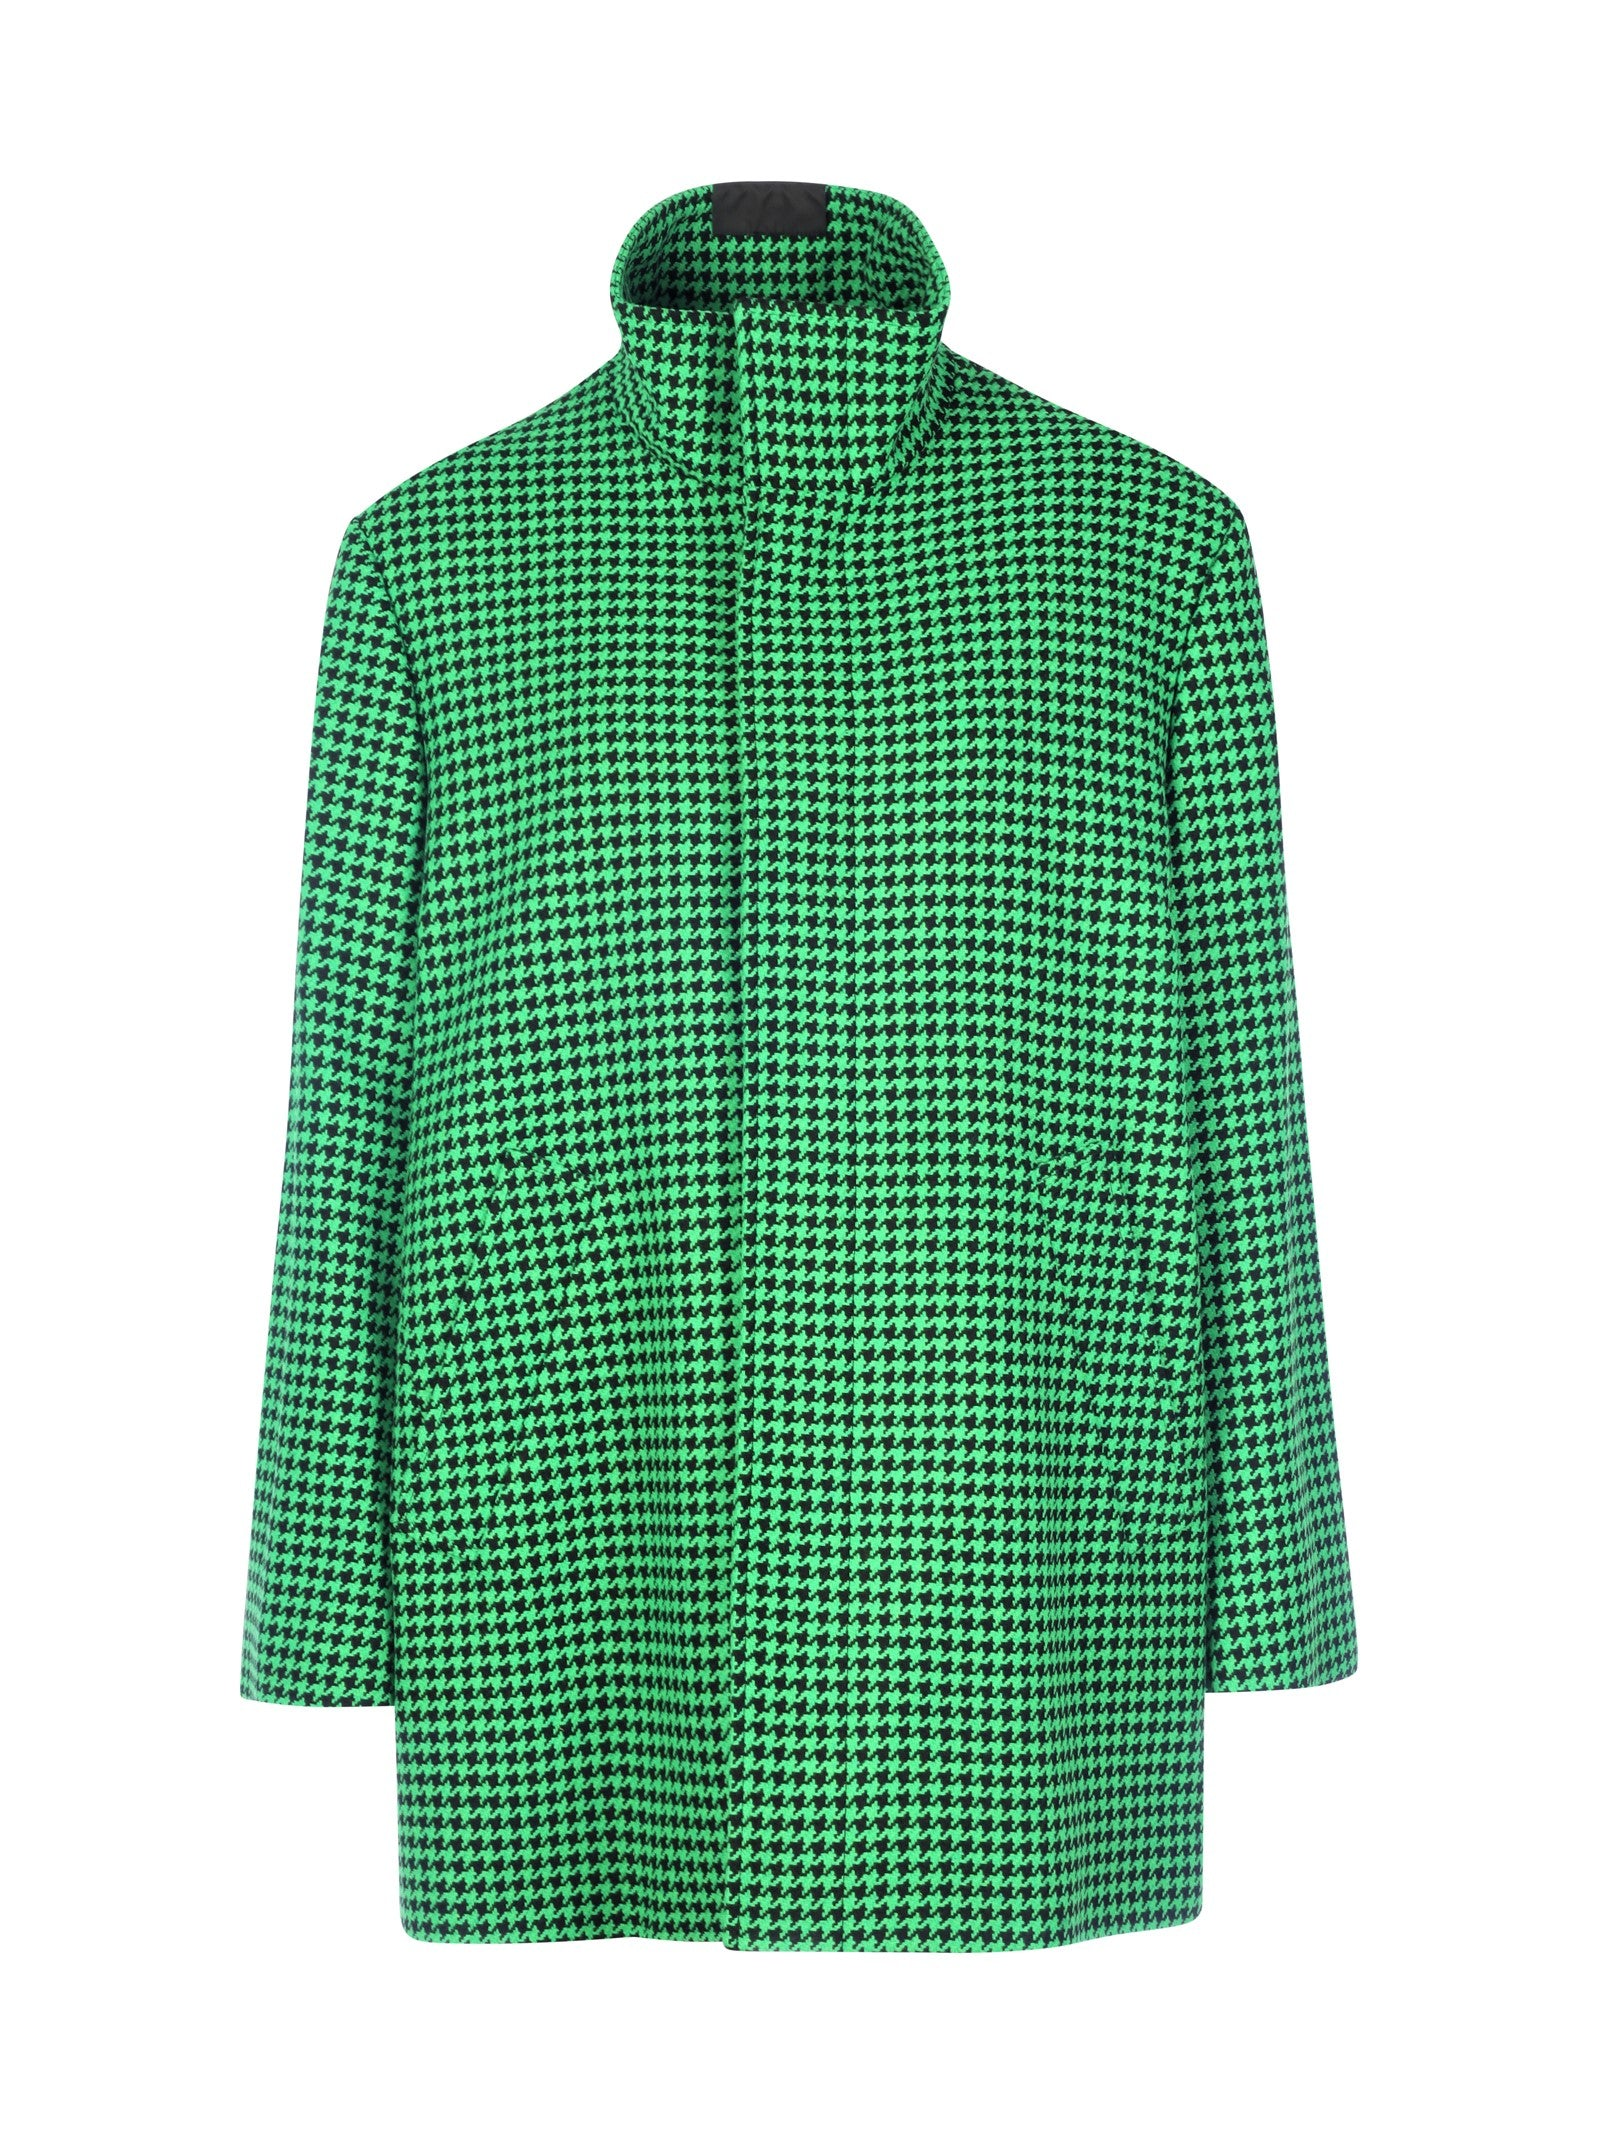 Green houndstooth a-shape coat